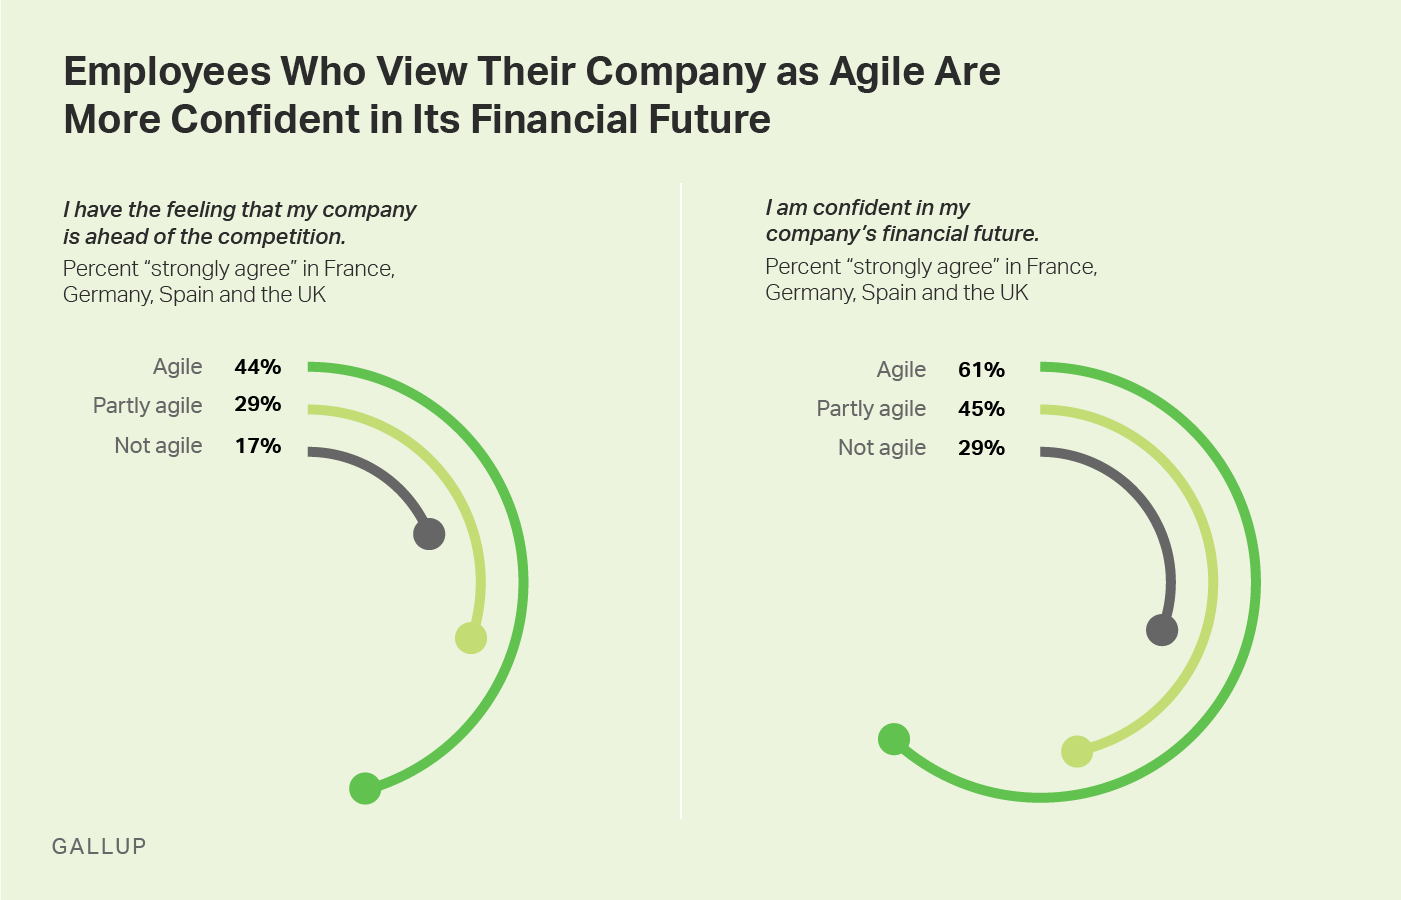 Graphic: Employees Who View Their Company as Agile Are More Confident in Its Financial Future.